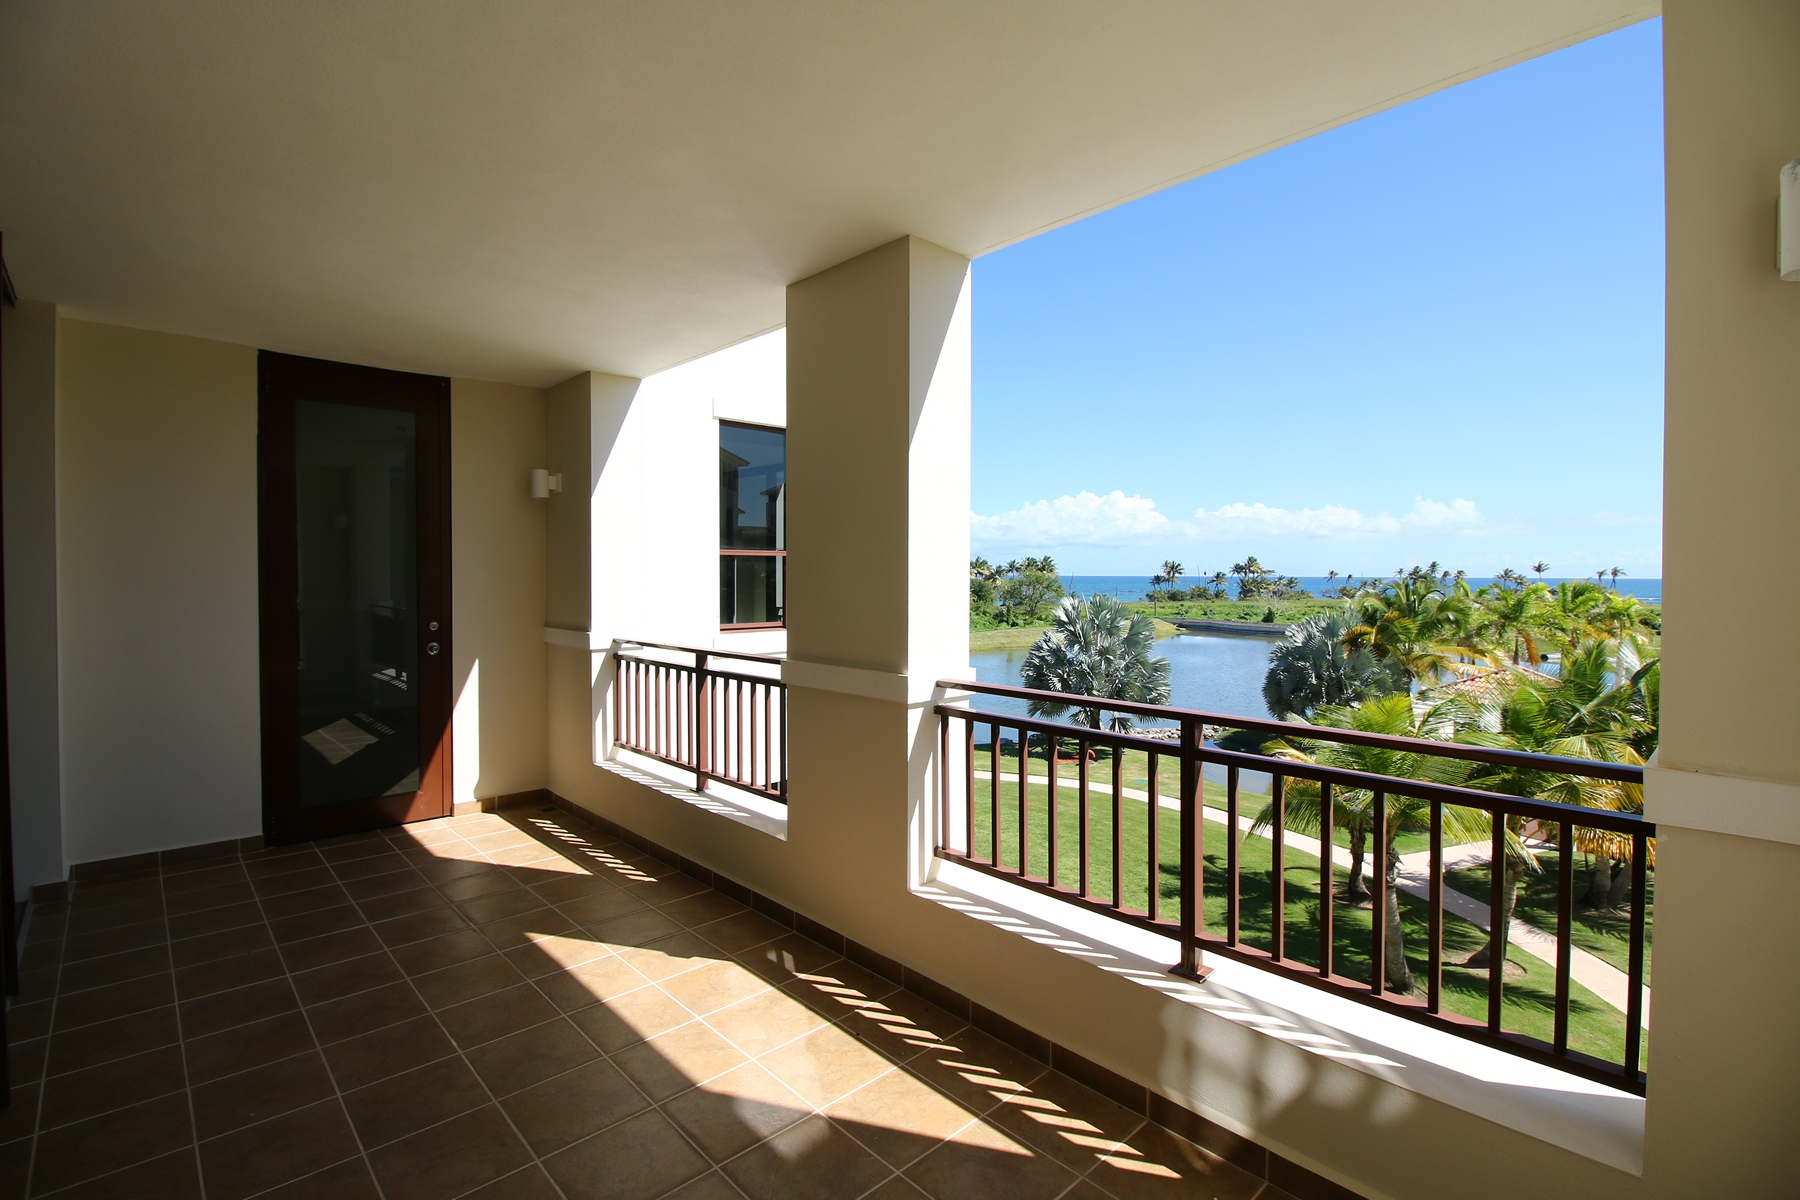 Additional photo for property listing at Residence 221 at 238 Candelero Drive 238 Candelero Drive, Apt 221 Solarea Beach Resort and Yacht Club Palmas Del Mar, Puerto Rico 00791 Puerto Rico